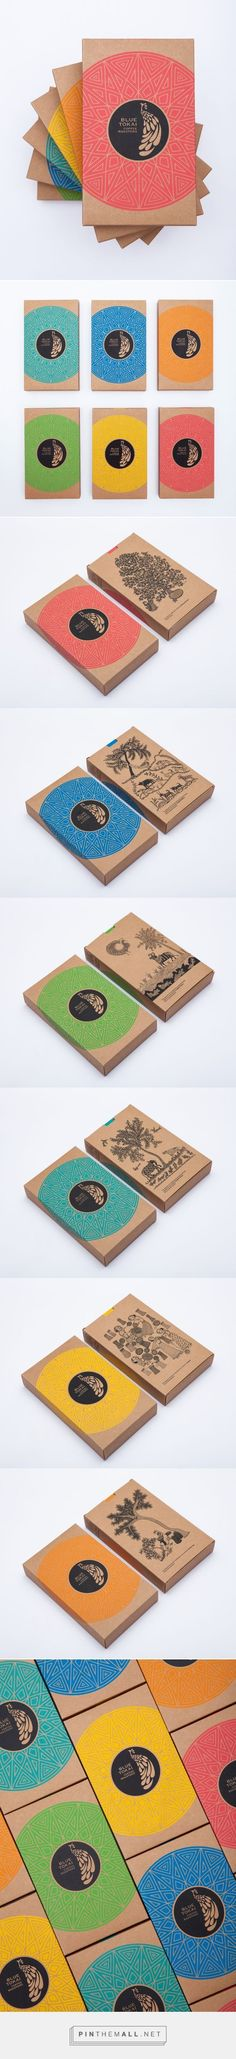 Graphic design, print design and packaging for Blue Tokai on Behance by…